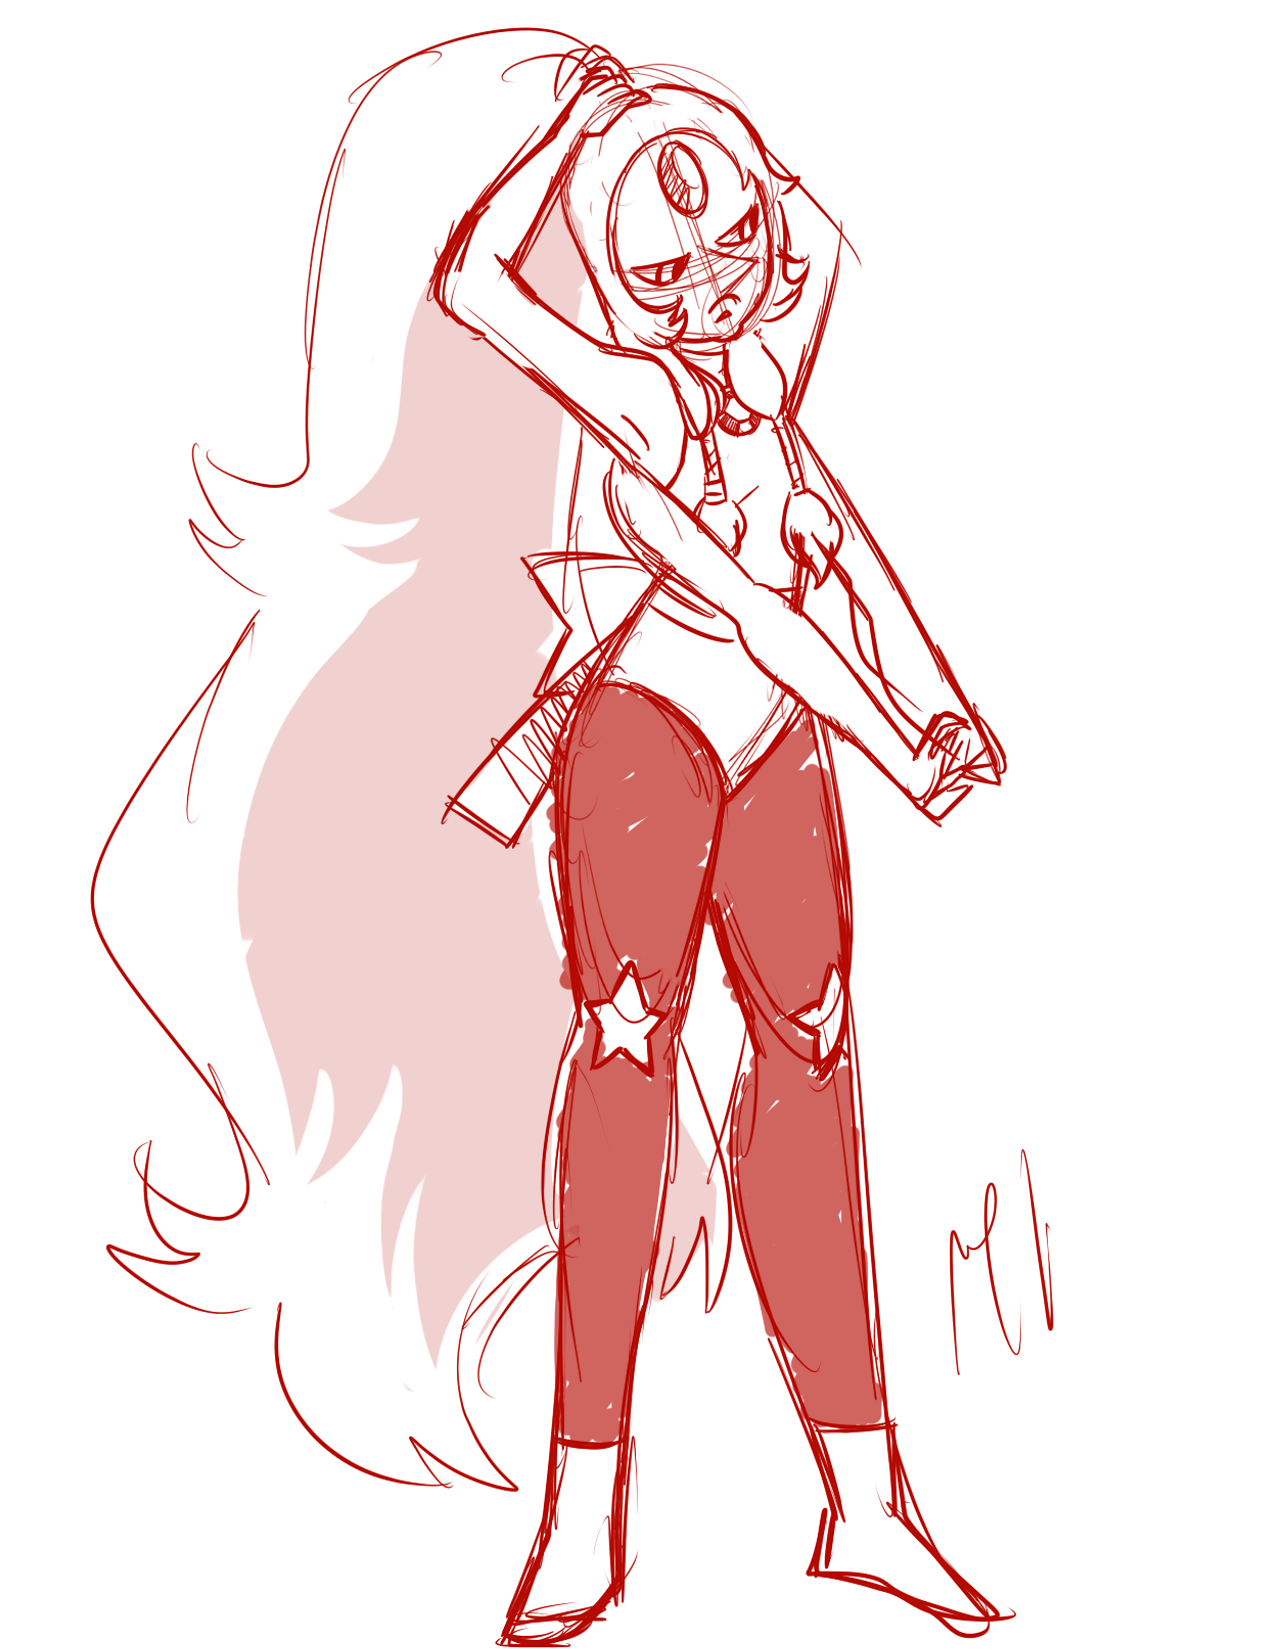 doing some warm up sketches of Opal doing warm ups lol